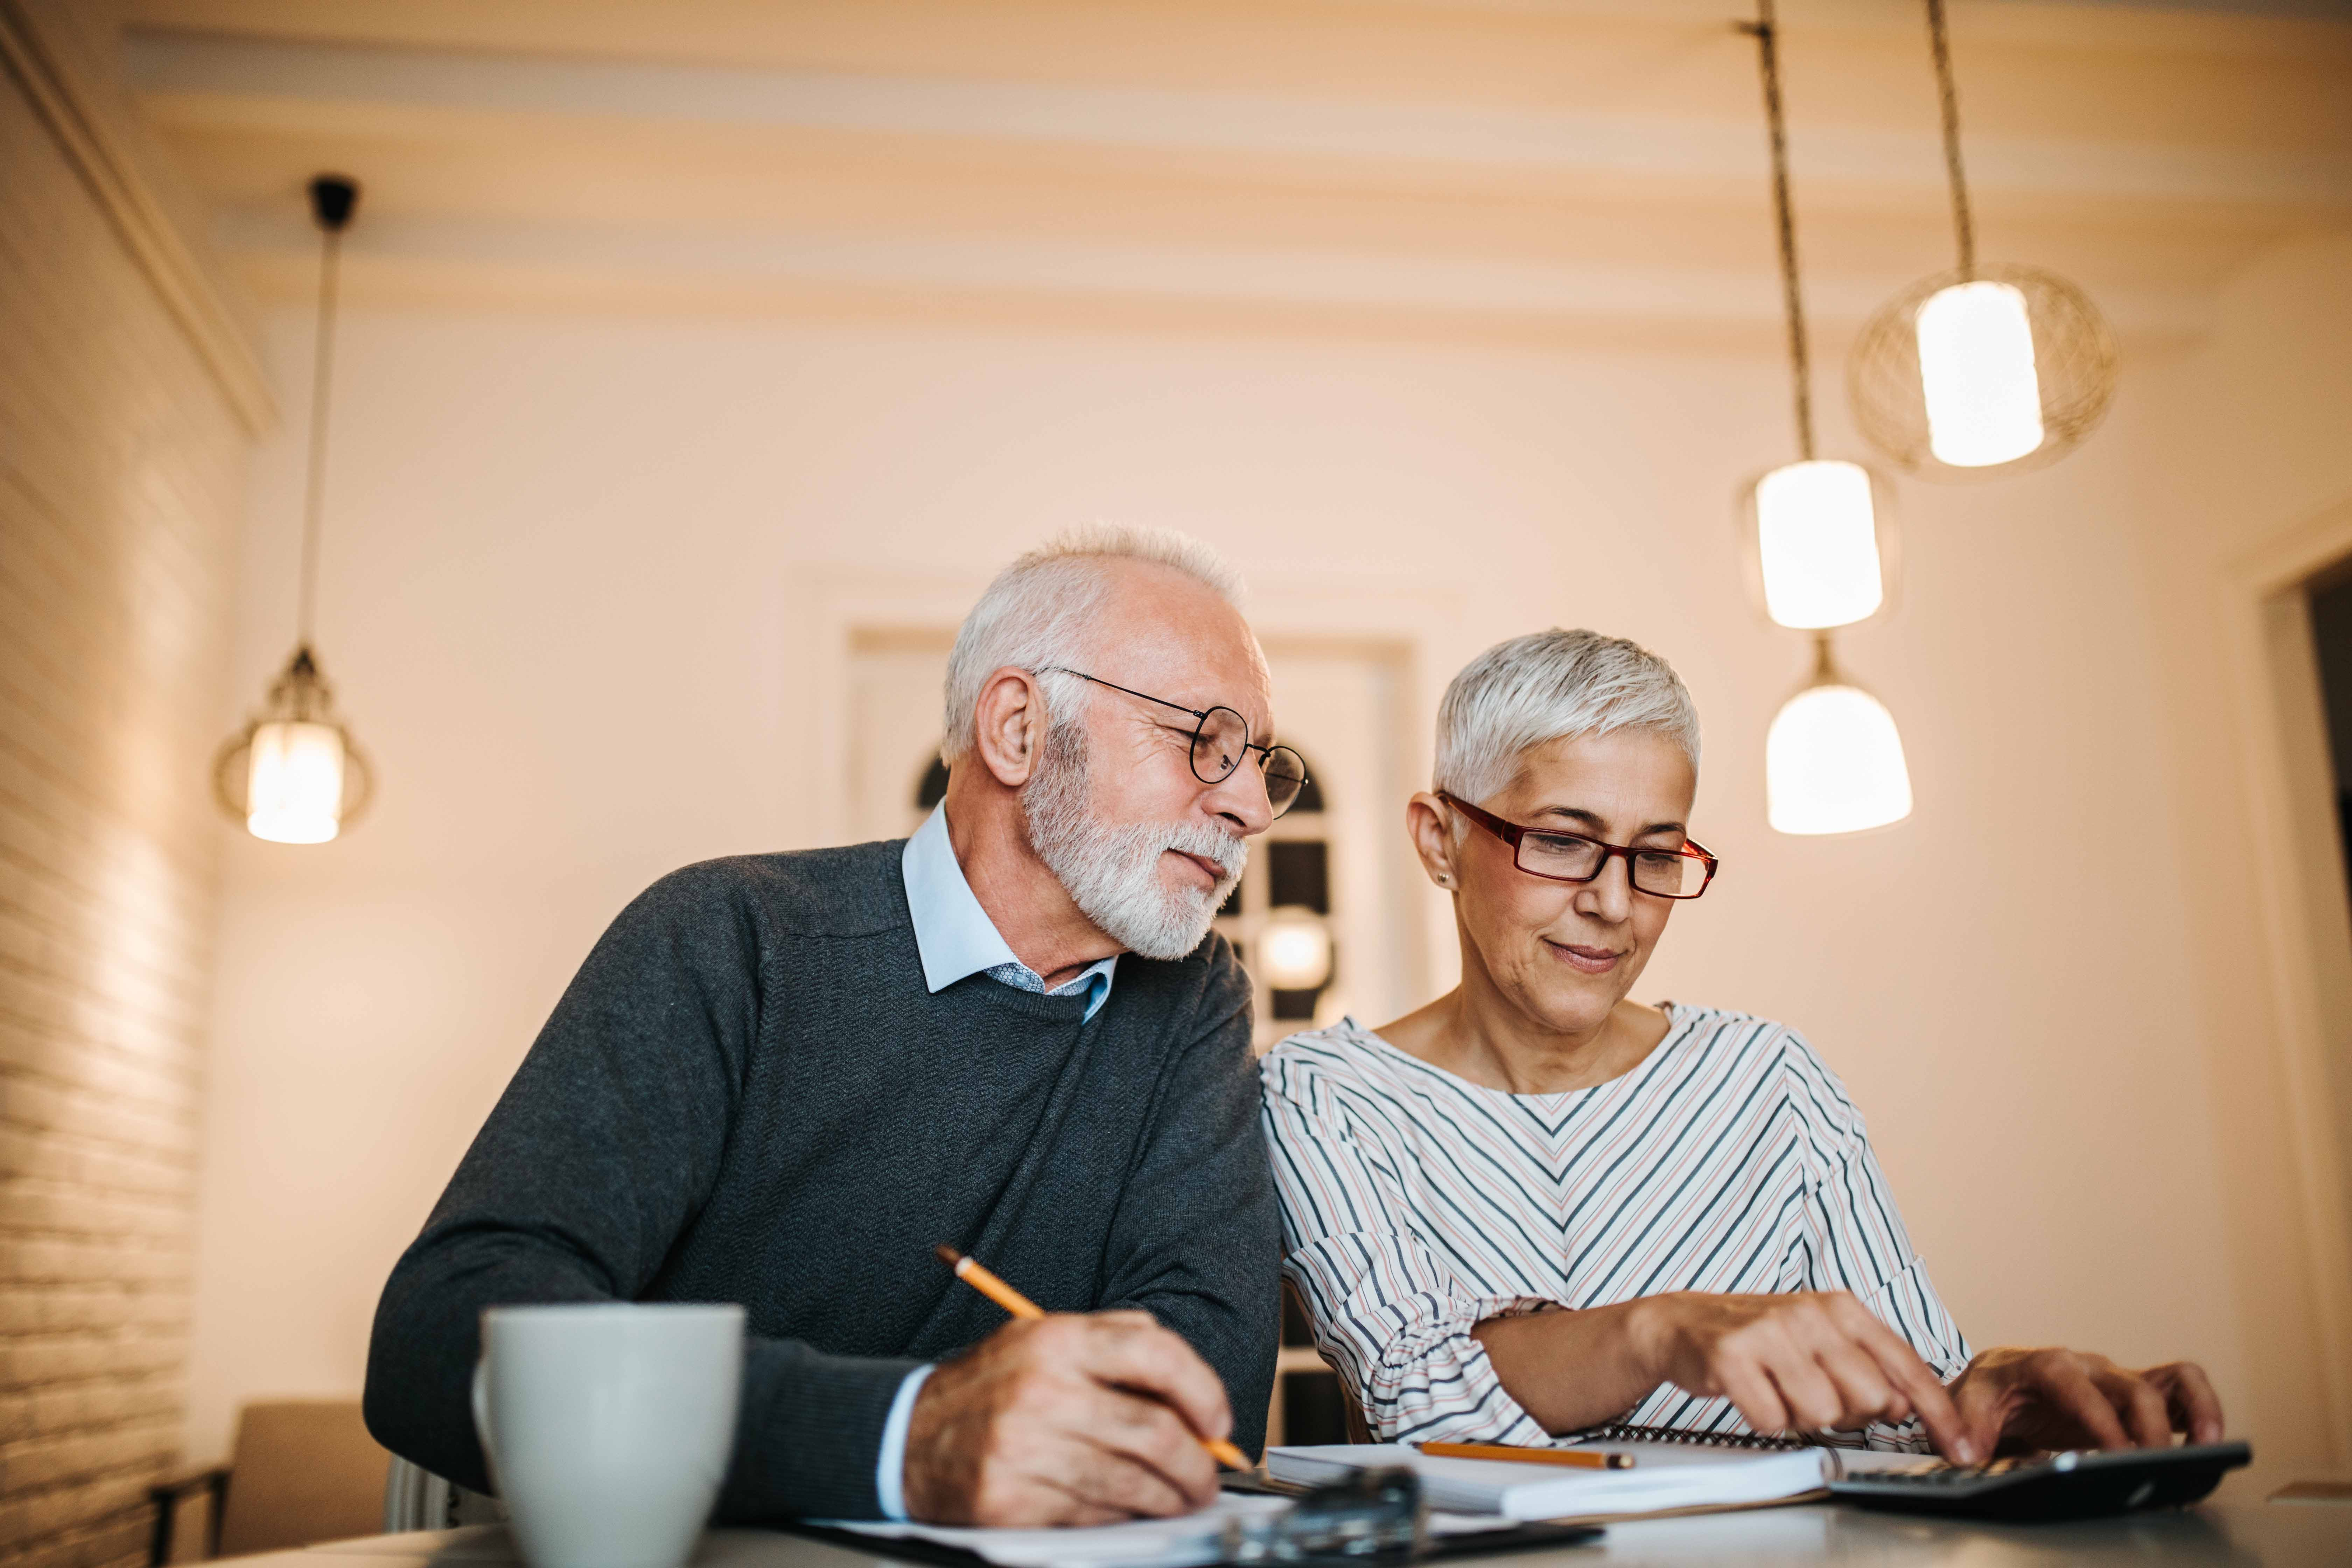 You could be limited to £10k pa pension contributions